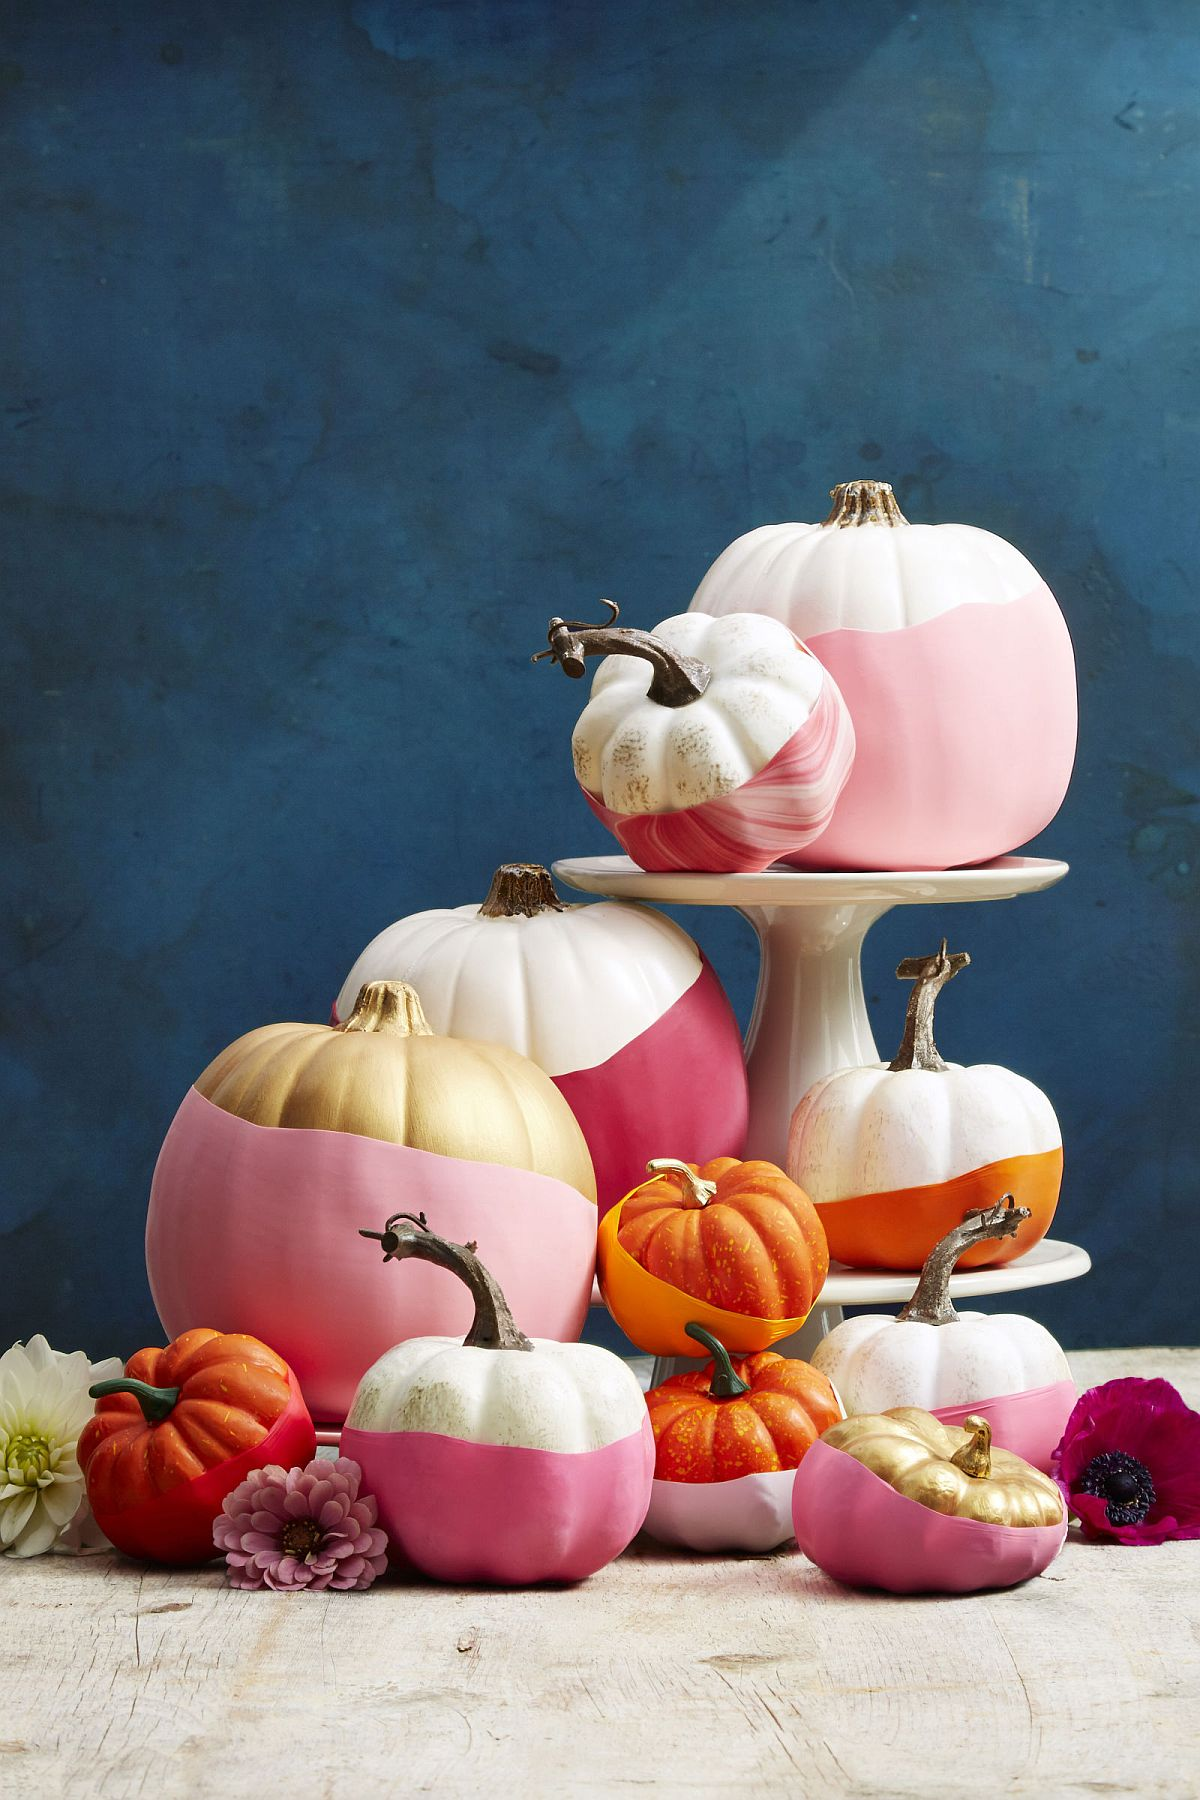 Glamorous and chic pumpkin painting idea for a stylish Halloween